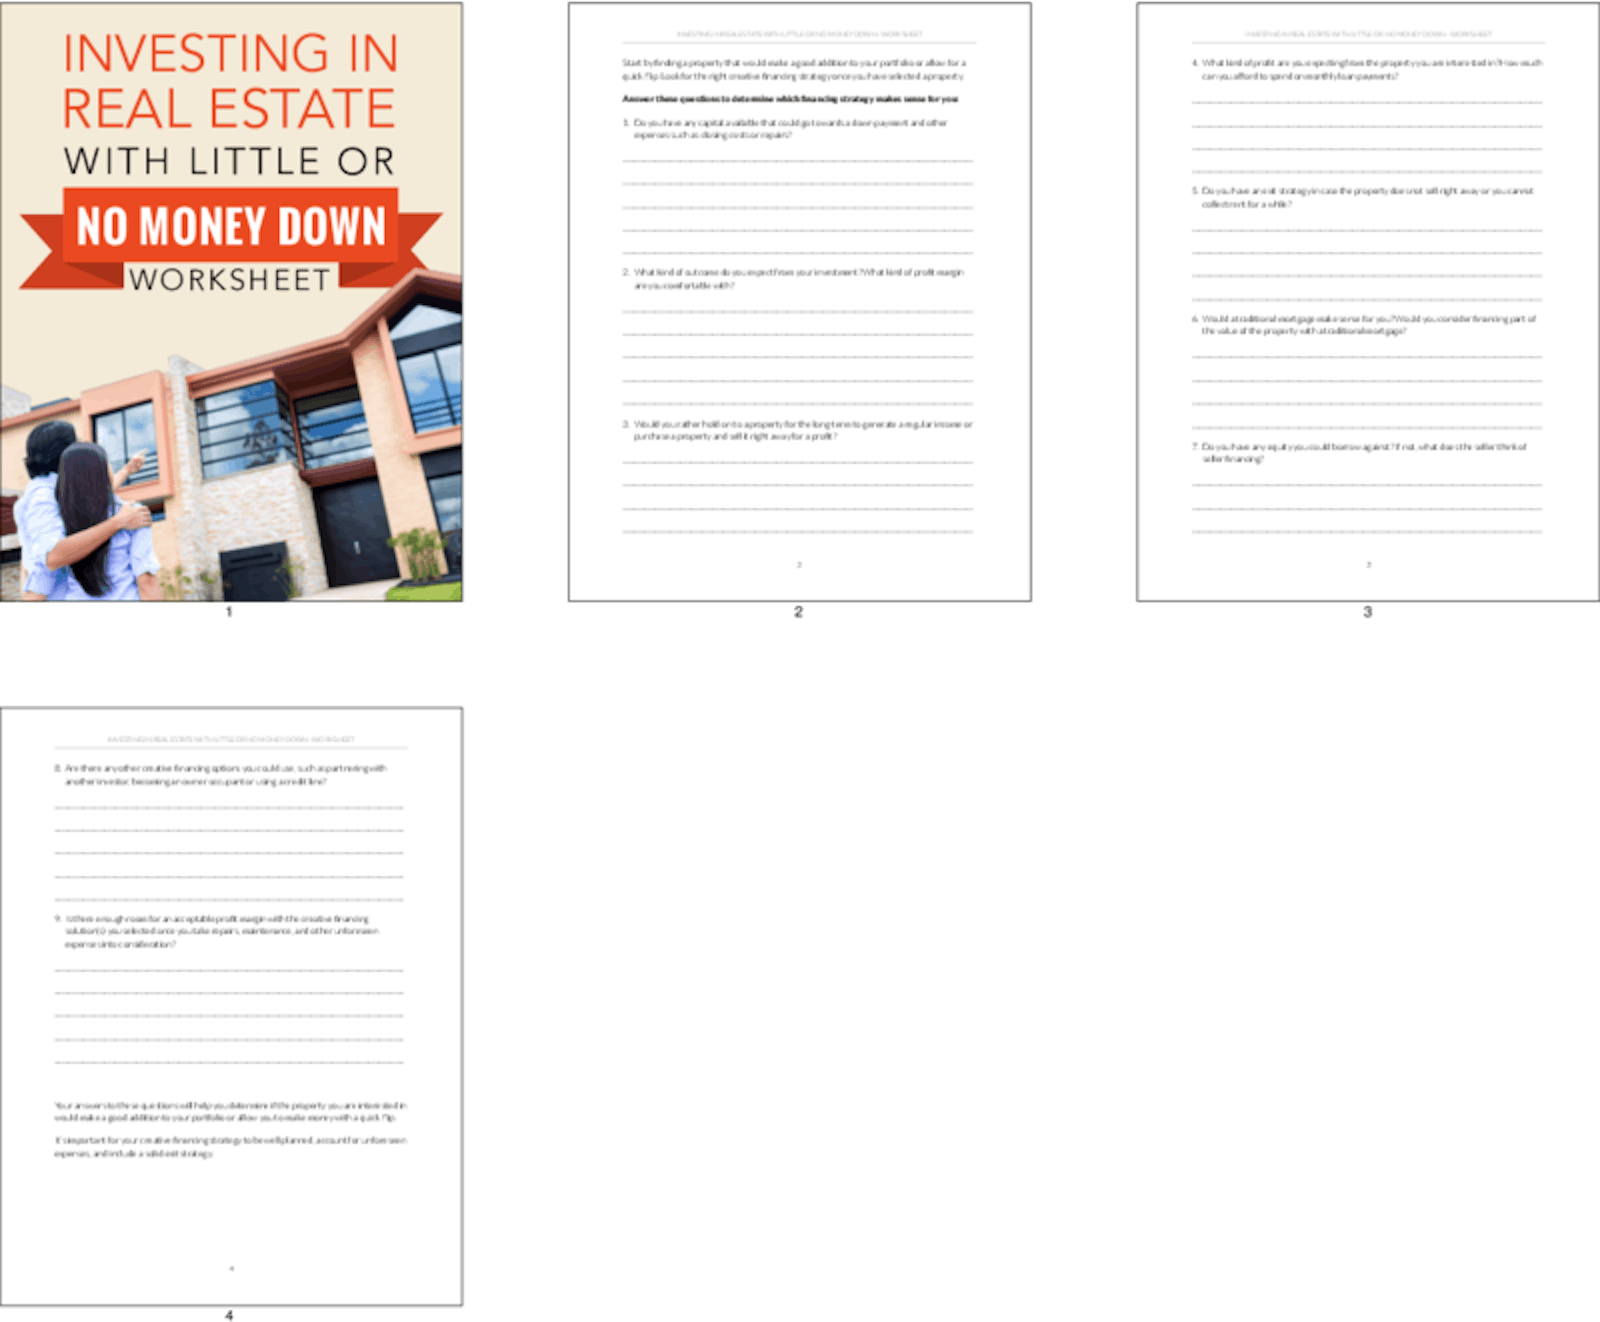 Investing In Real Estate With Little Or No Money Down Worksheet